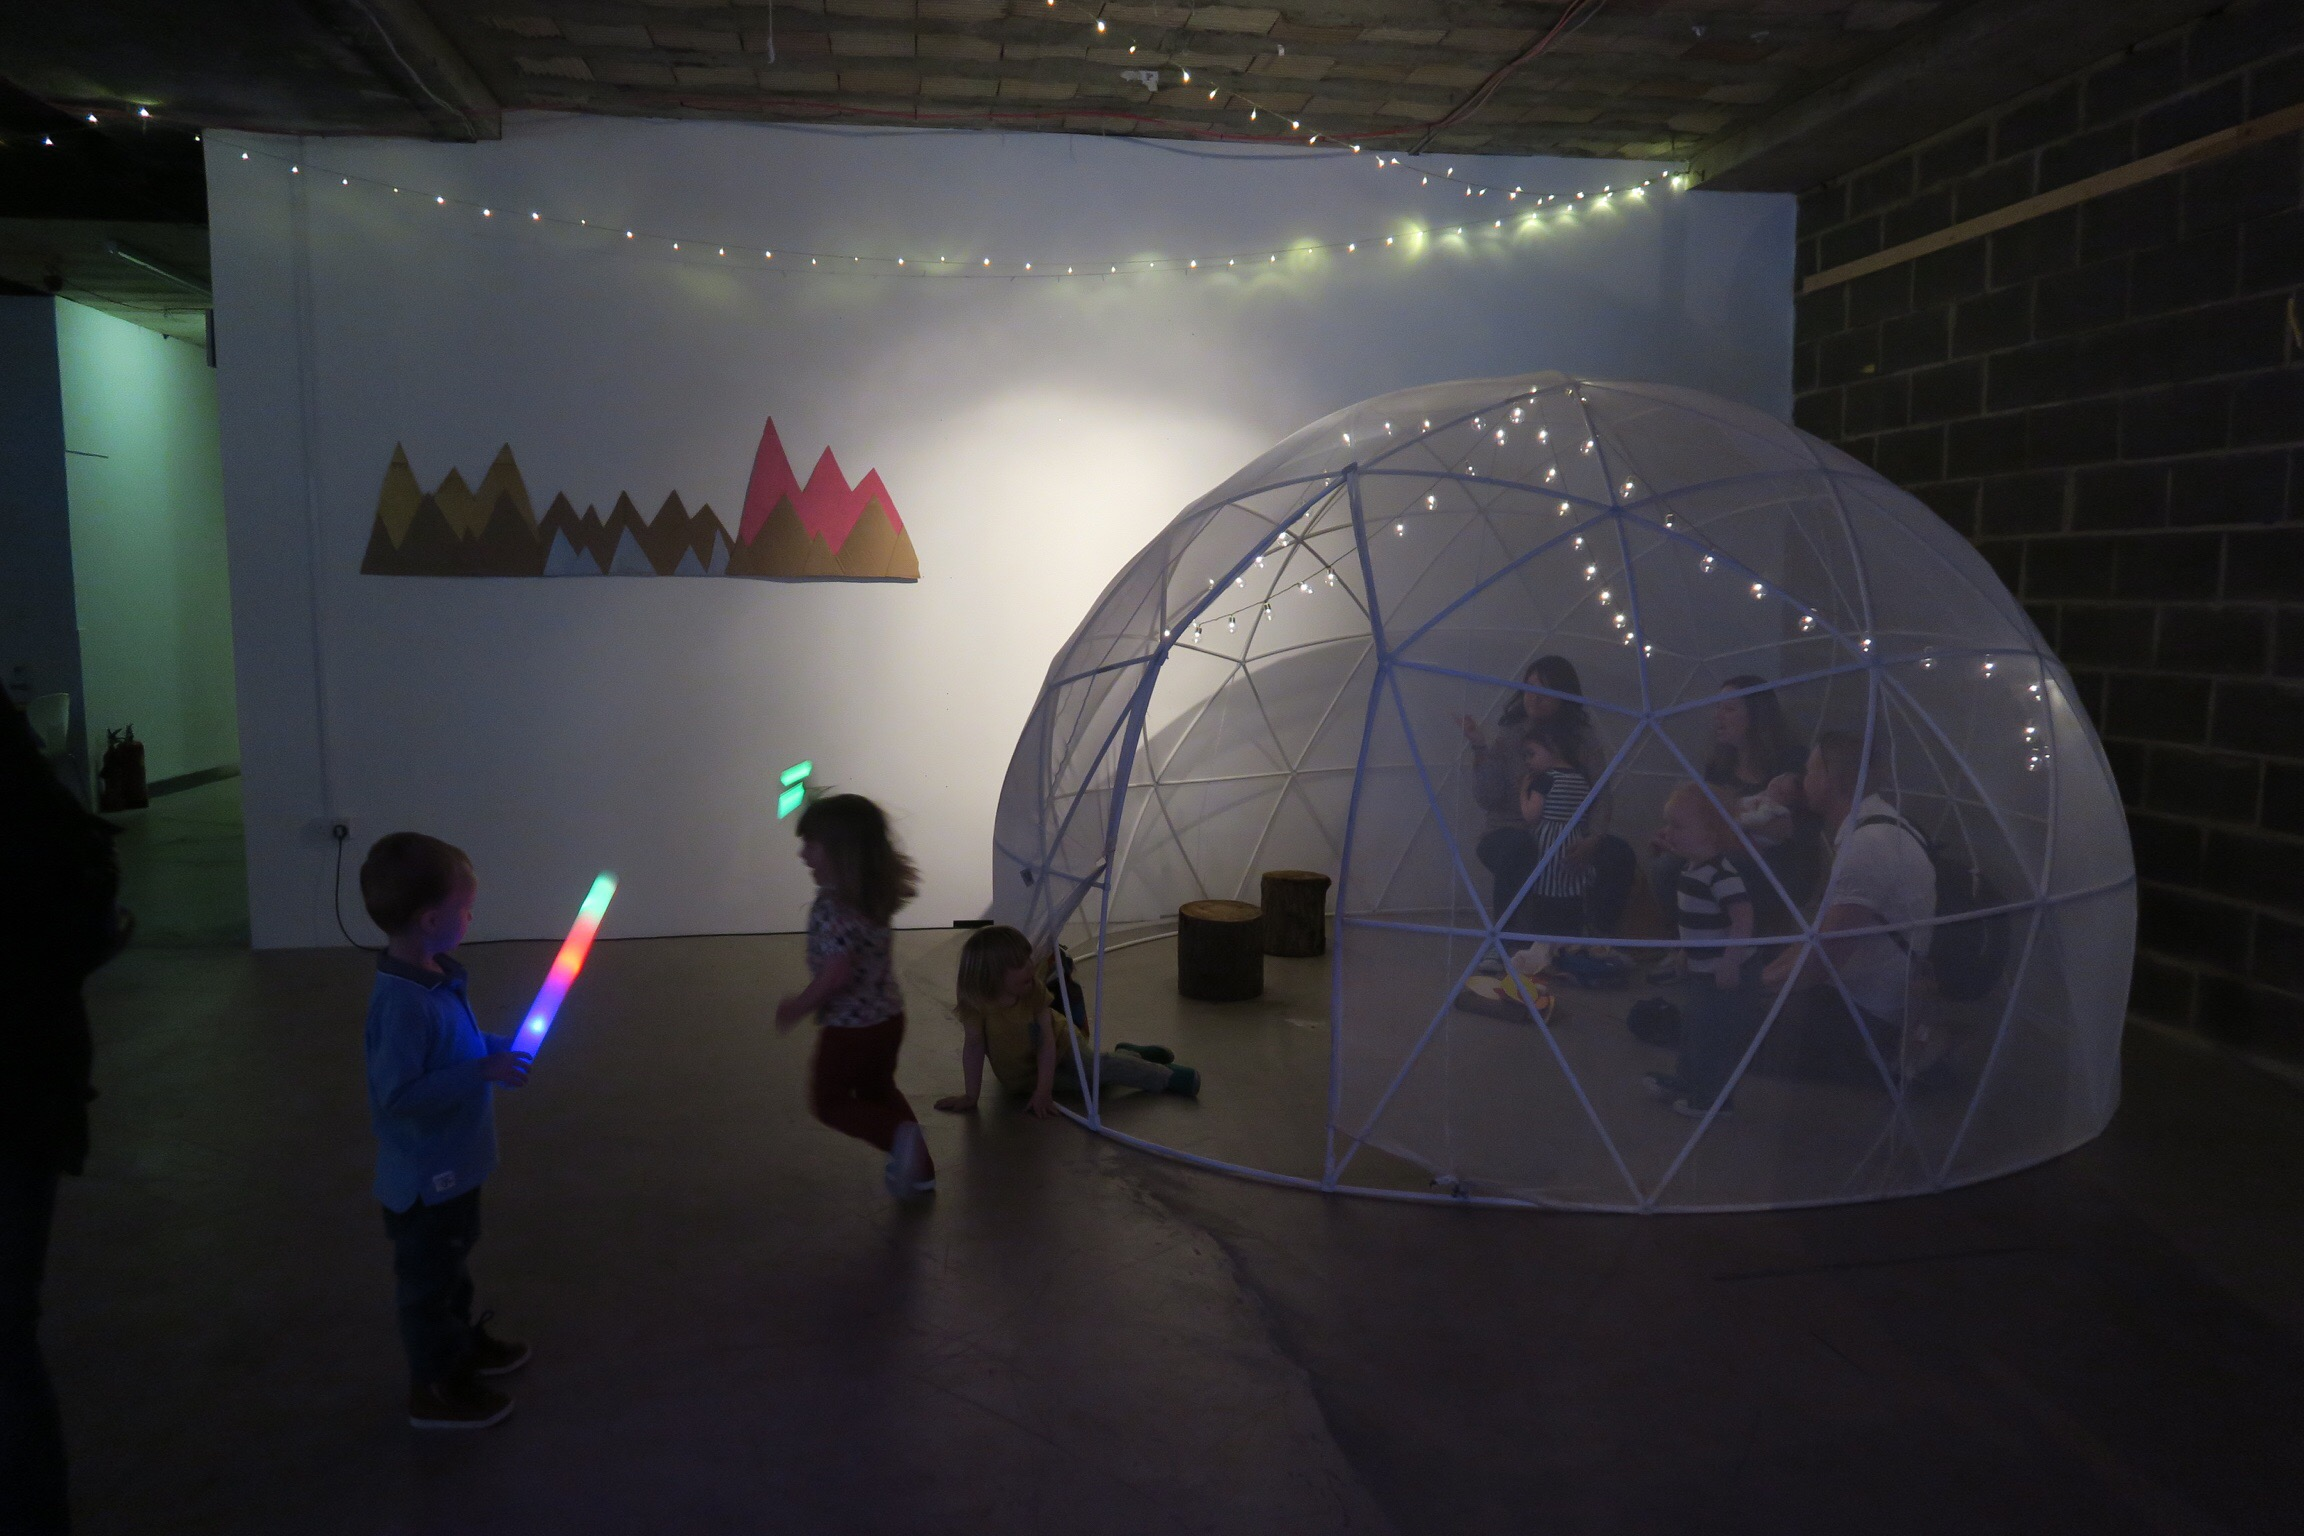 arlo playing with his rave light saber near the igloo